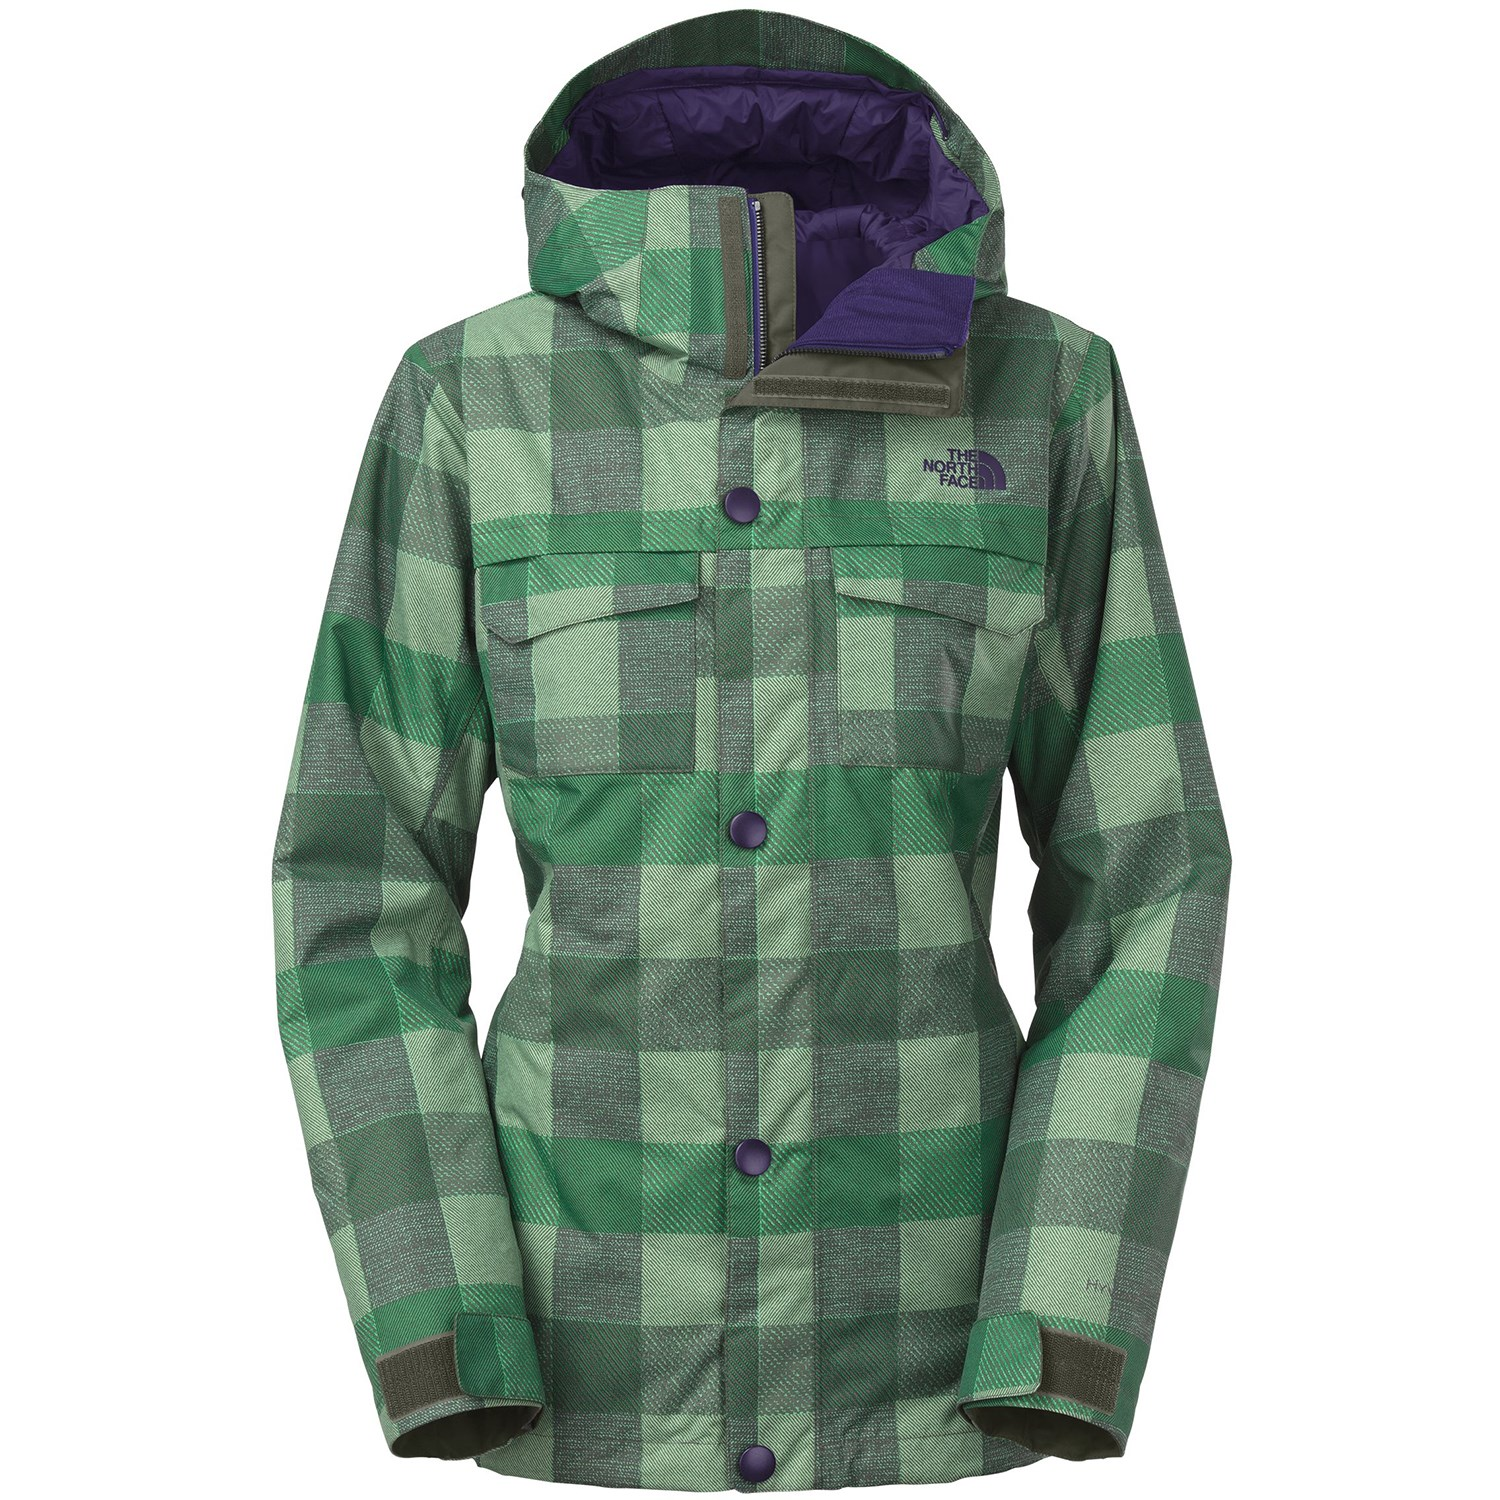 8d78bb693cdd7 The north face xxl womens jackets. Cheap clothing stores